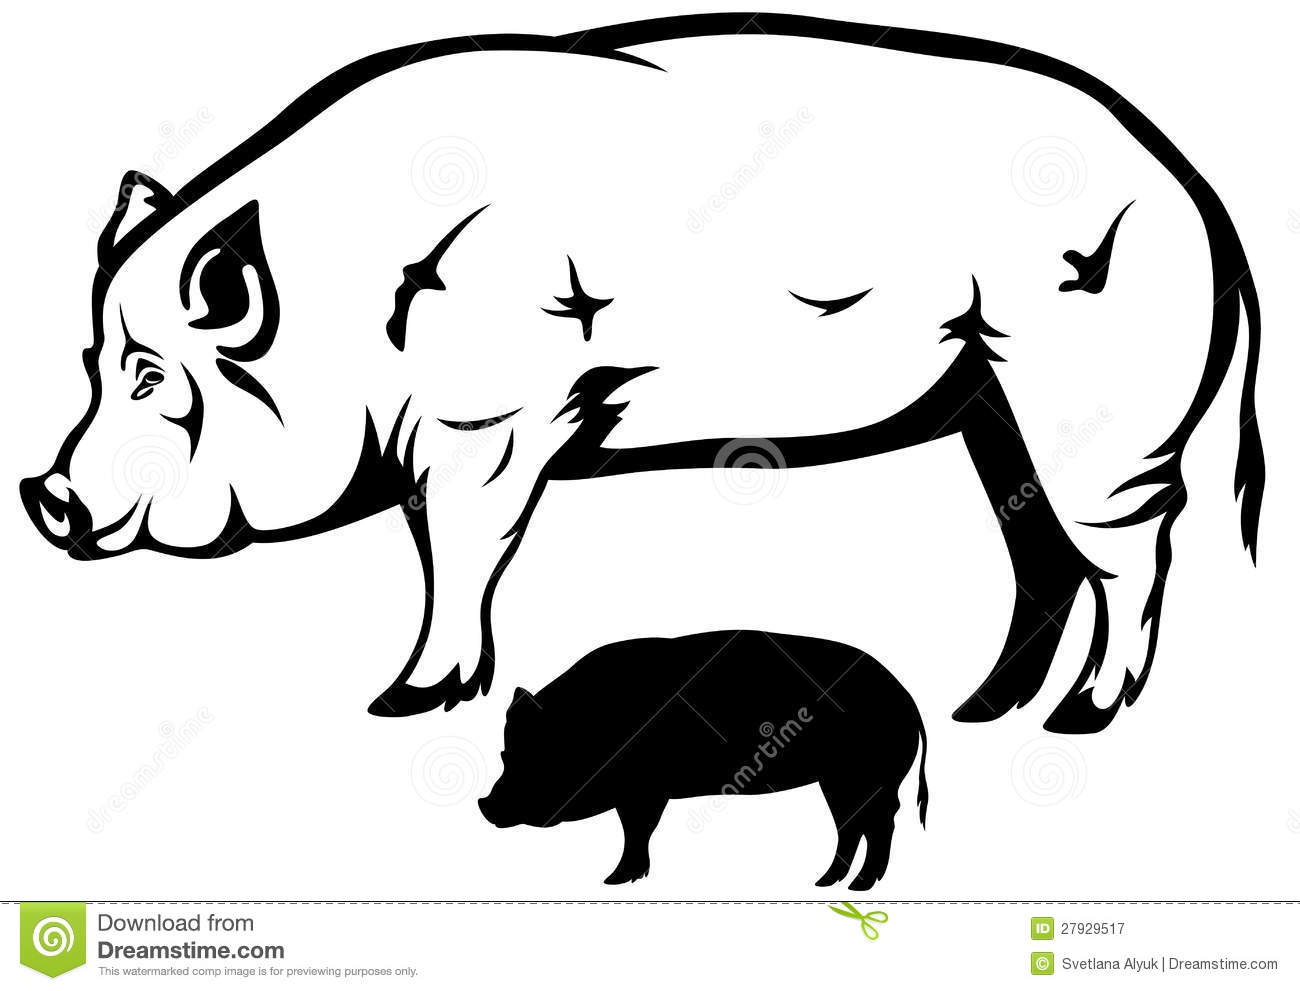 Pig vector stock vector. Illustration of cute, snout ...